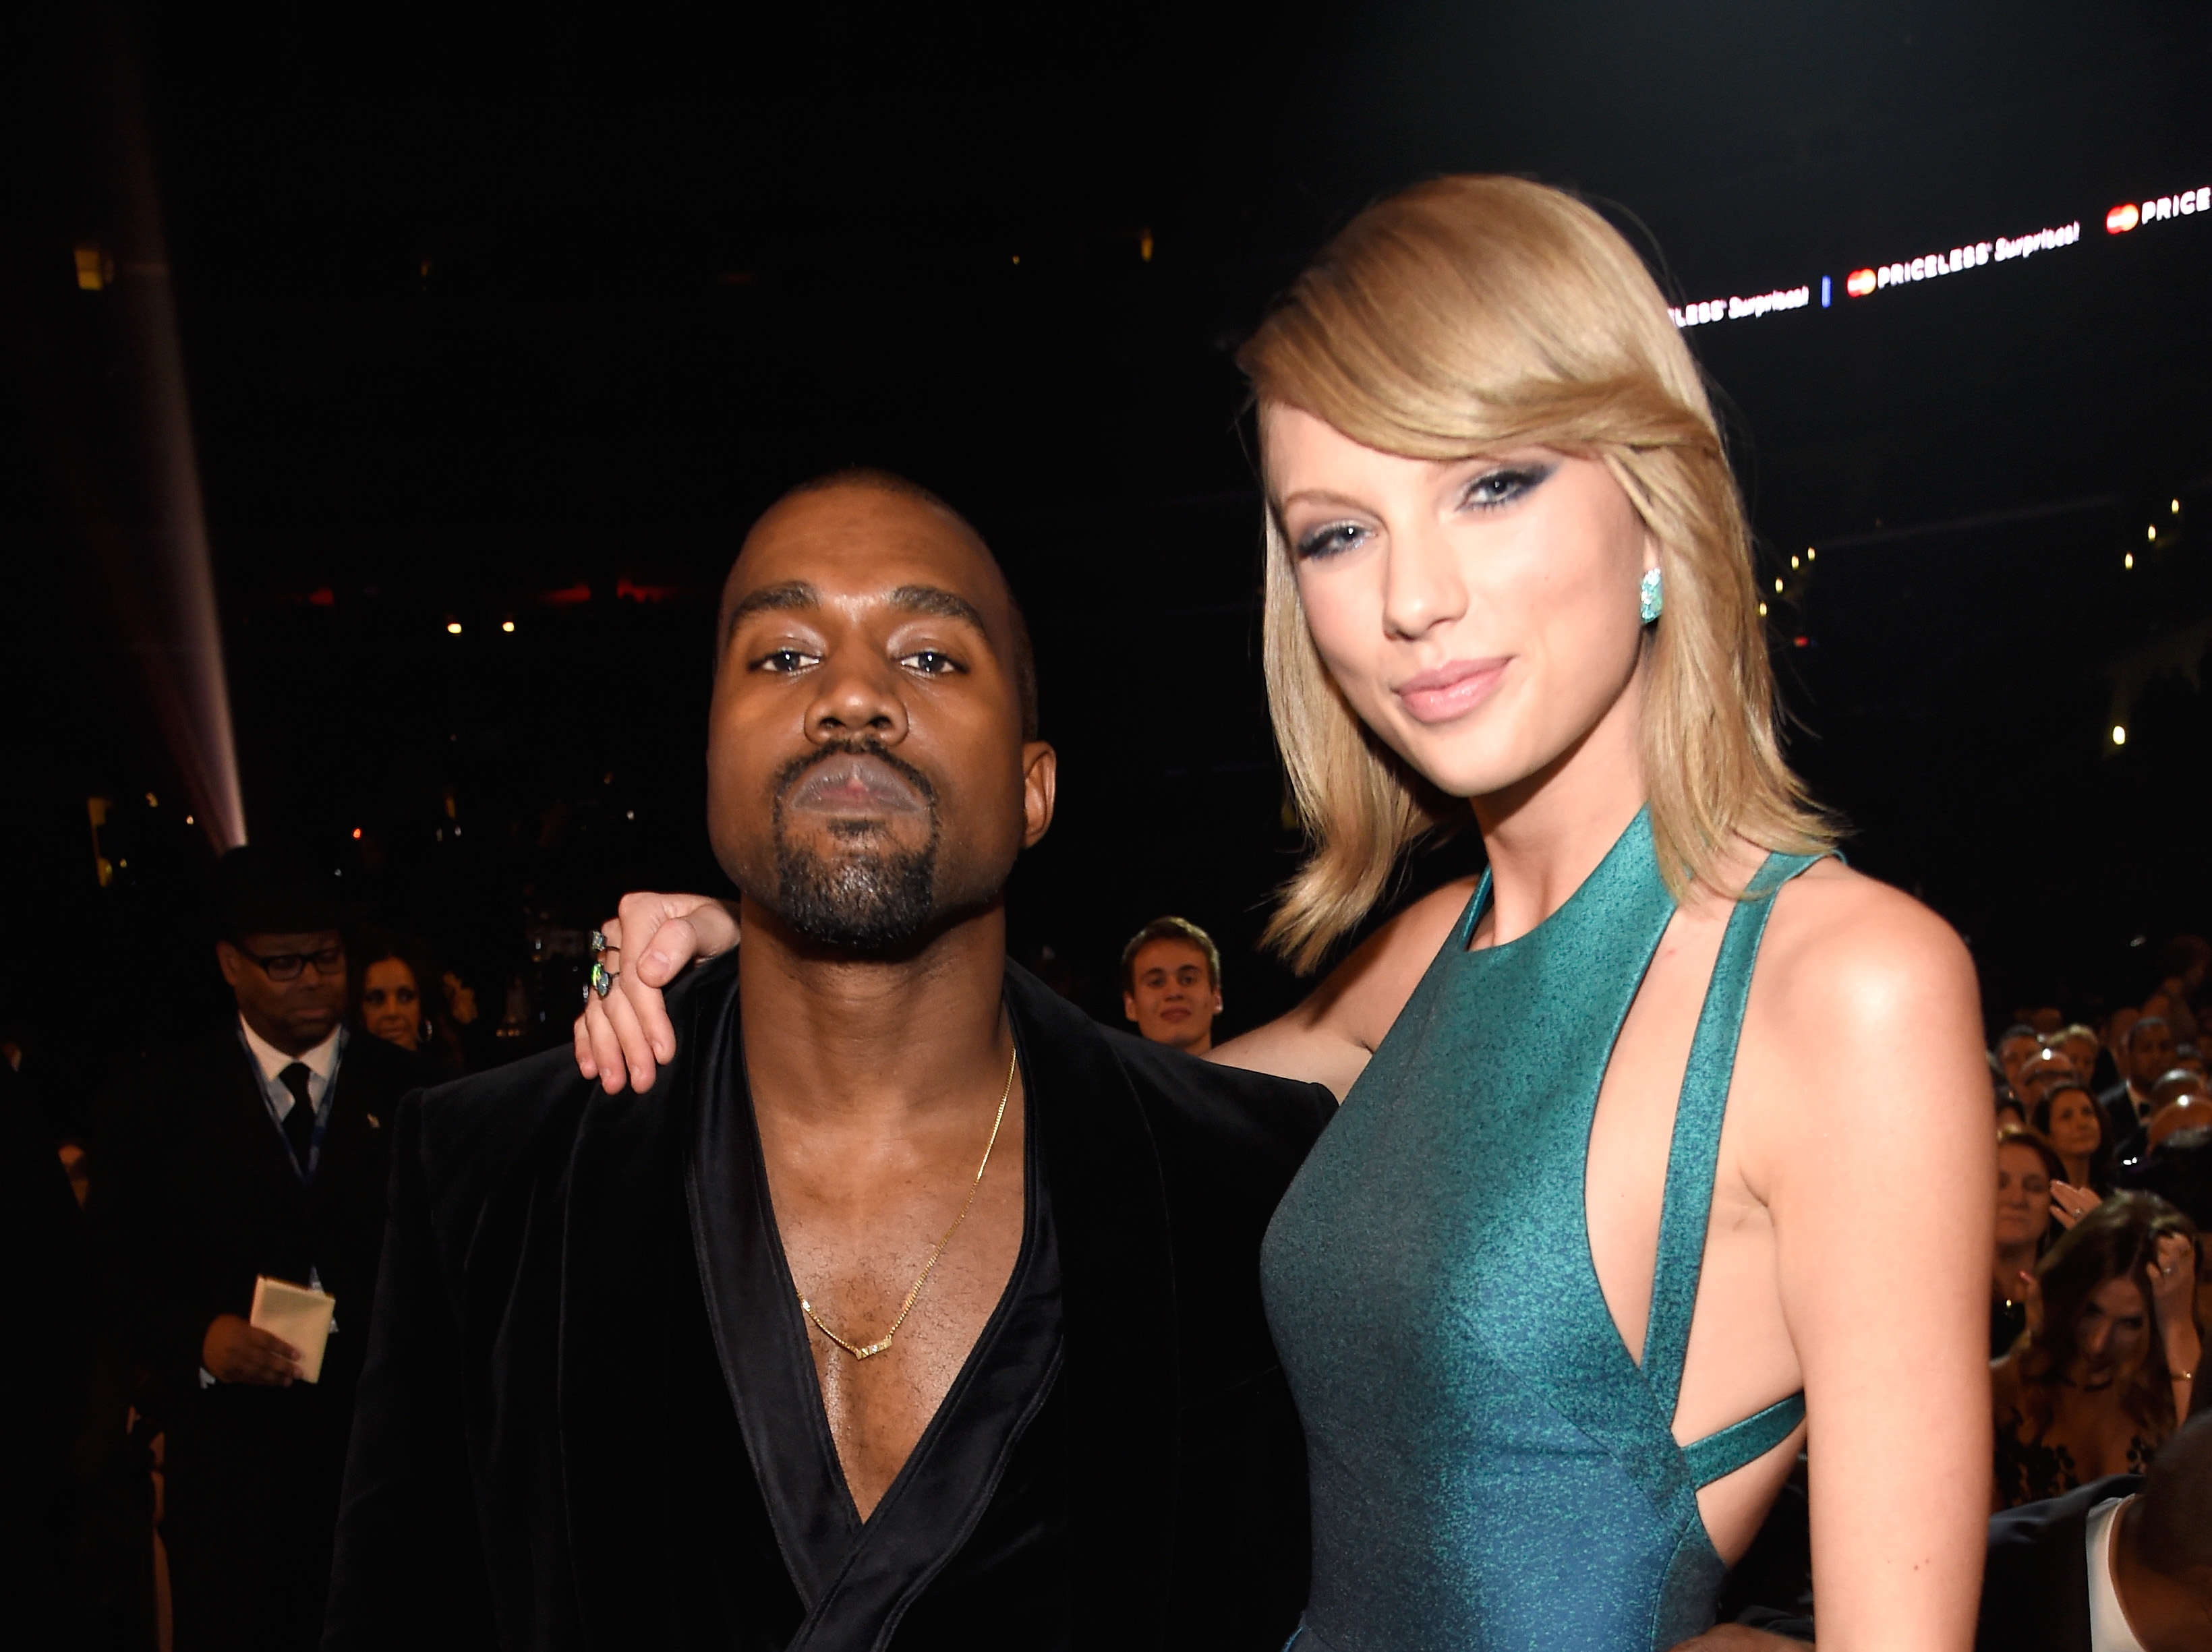 Here's the Taylor Swift song that is *probably* about her feud with Kim Kardashian and Kanye West